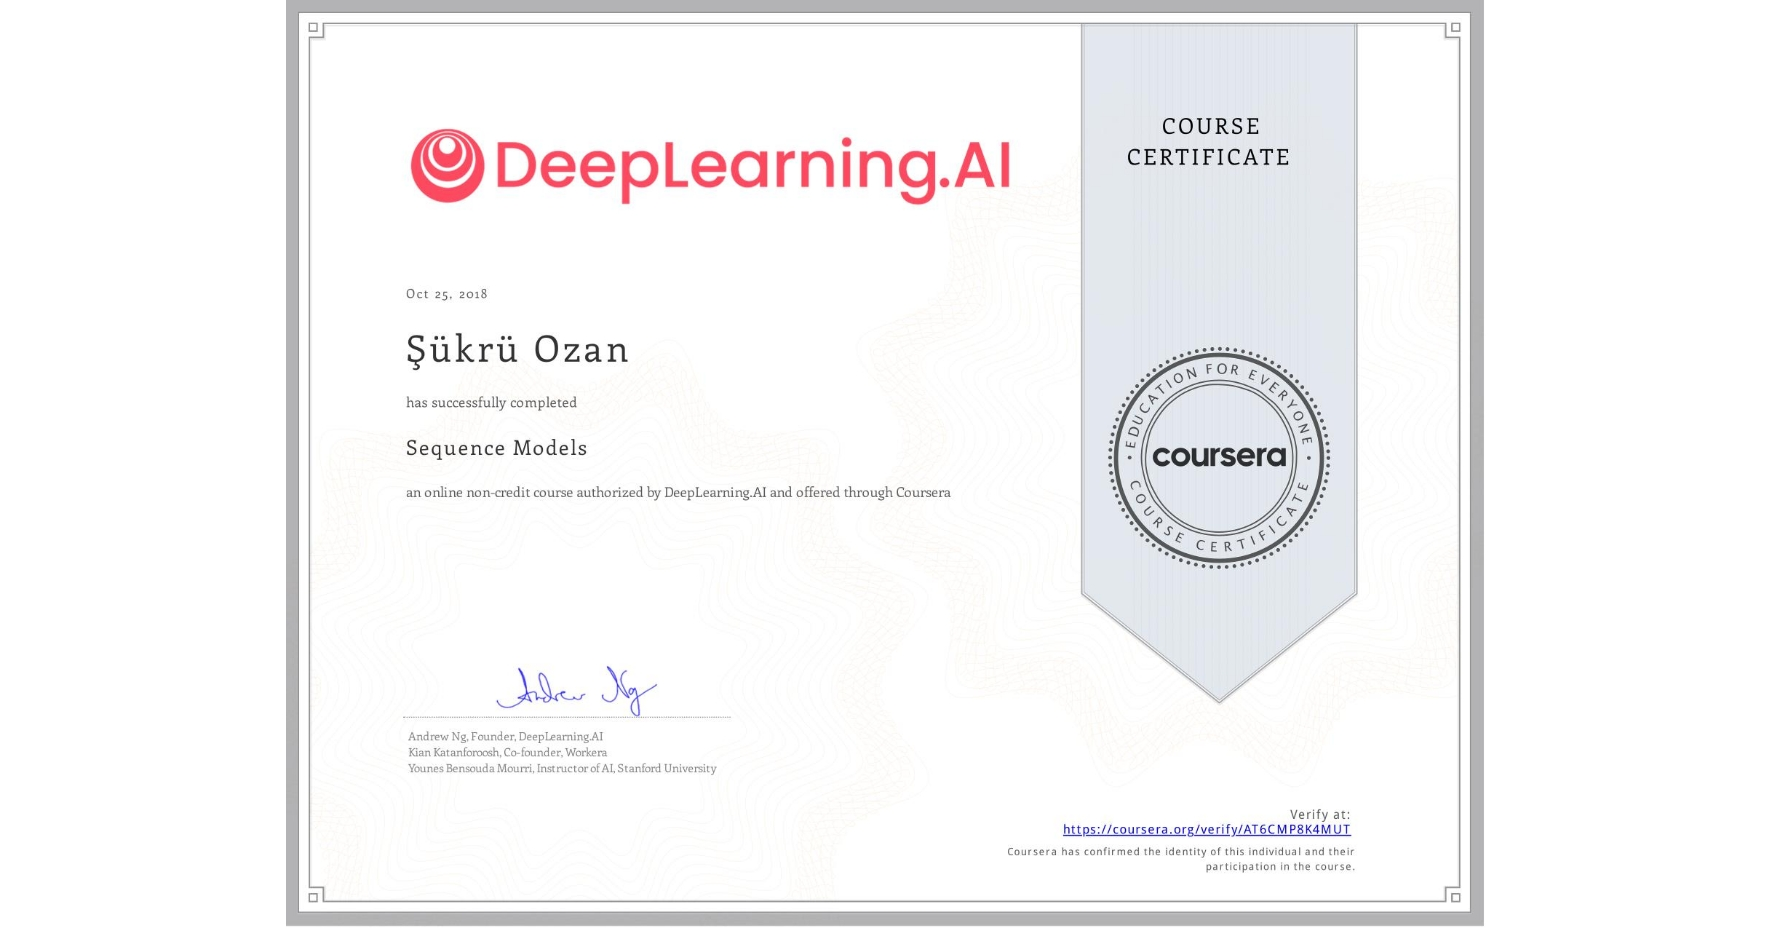 View certificate for Şükrü Ozan, Sequence Models, an online non-credit course authorized by DeepLearning.AI and offered through Coursera